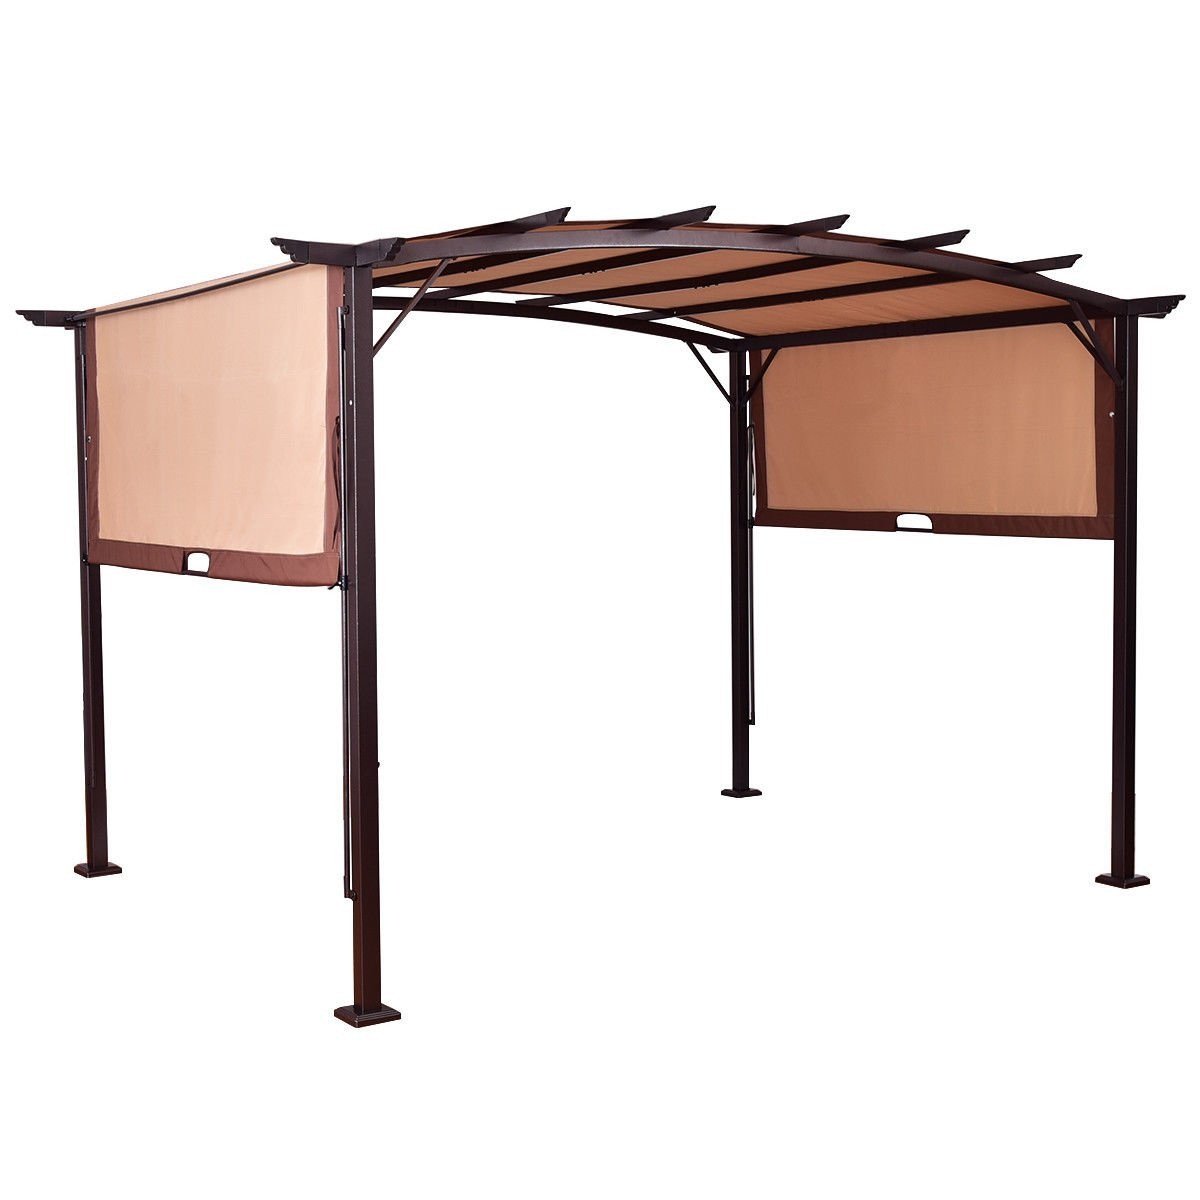 Tangkula 12' x 9' Pergola Gazebo Outdoor Patio Garden Steel Frame Sun Shelter with Retractable Canopy Shades by Tangkula